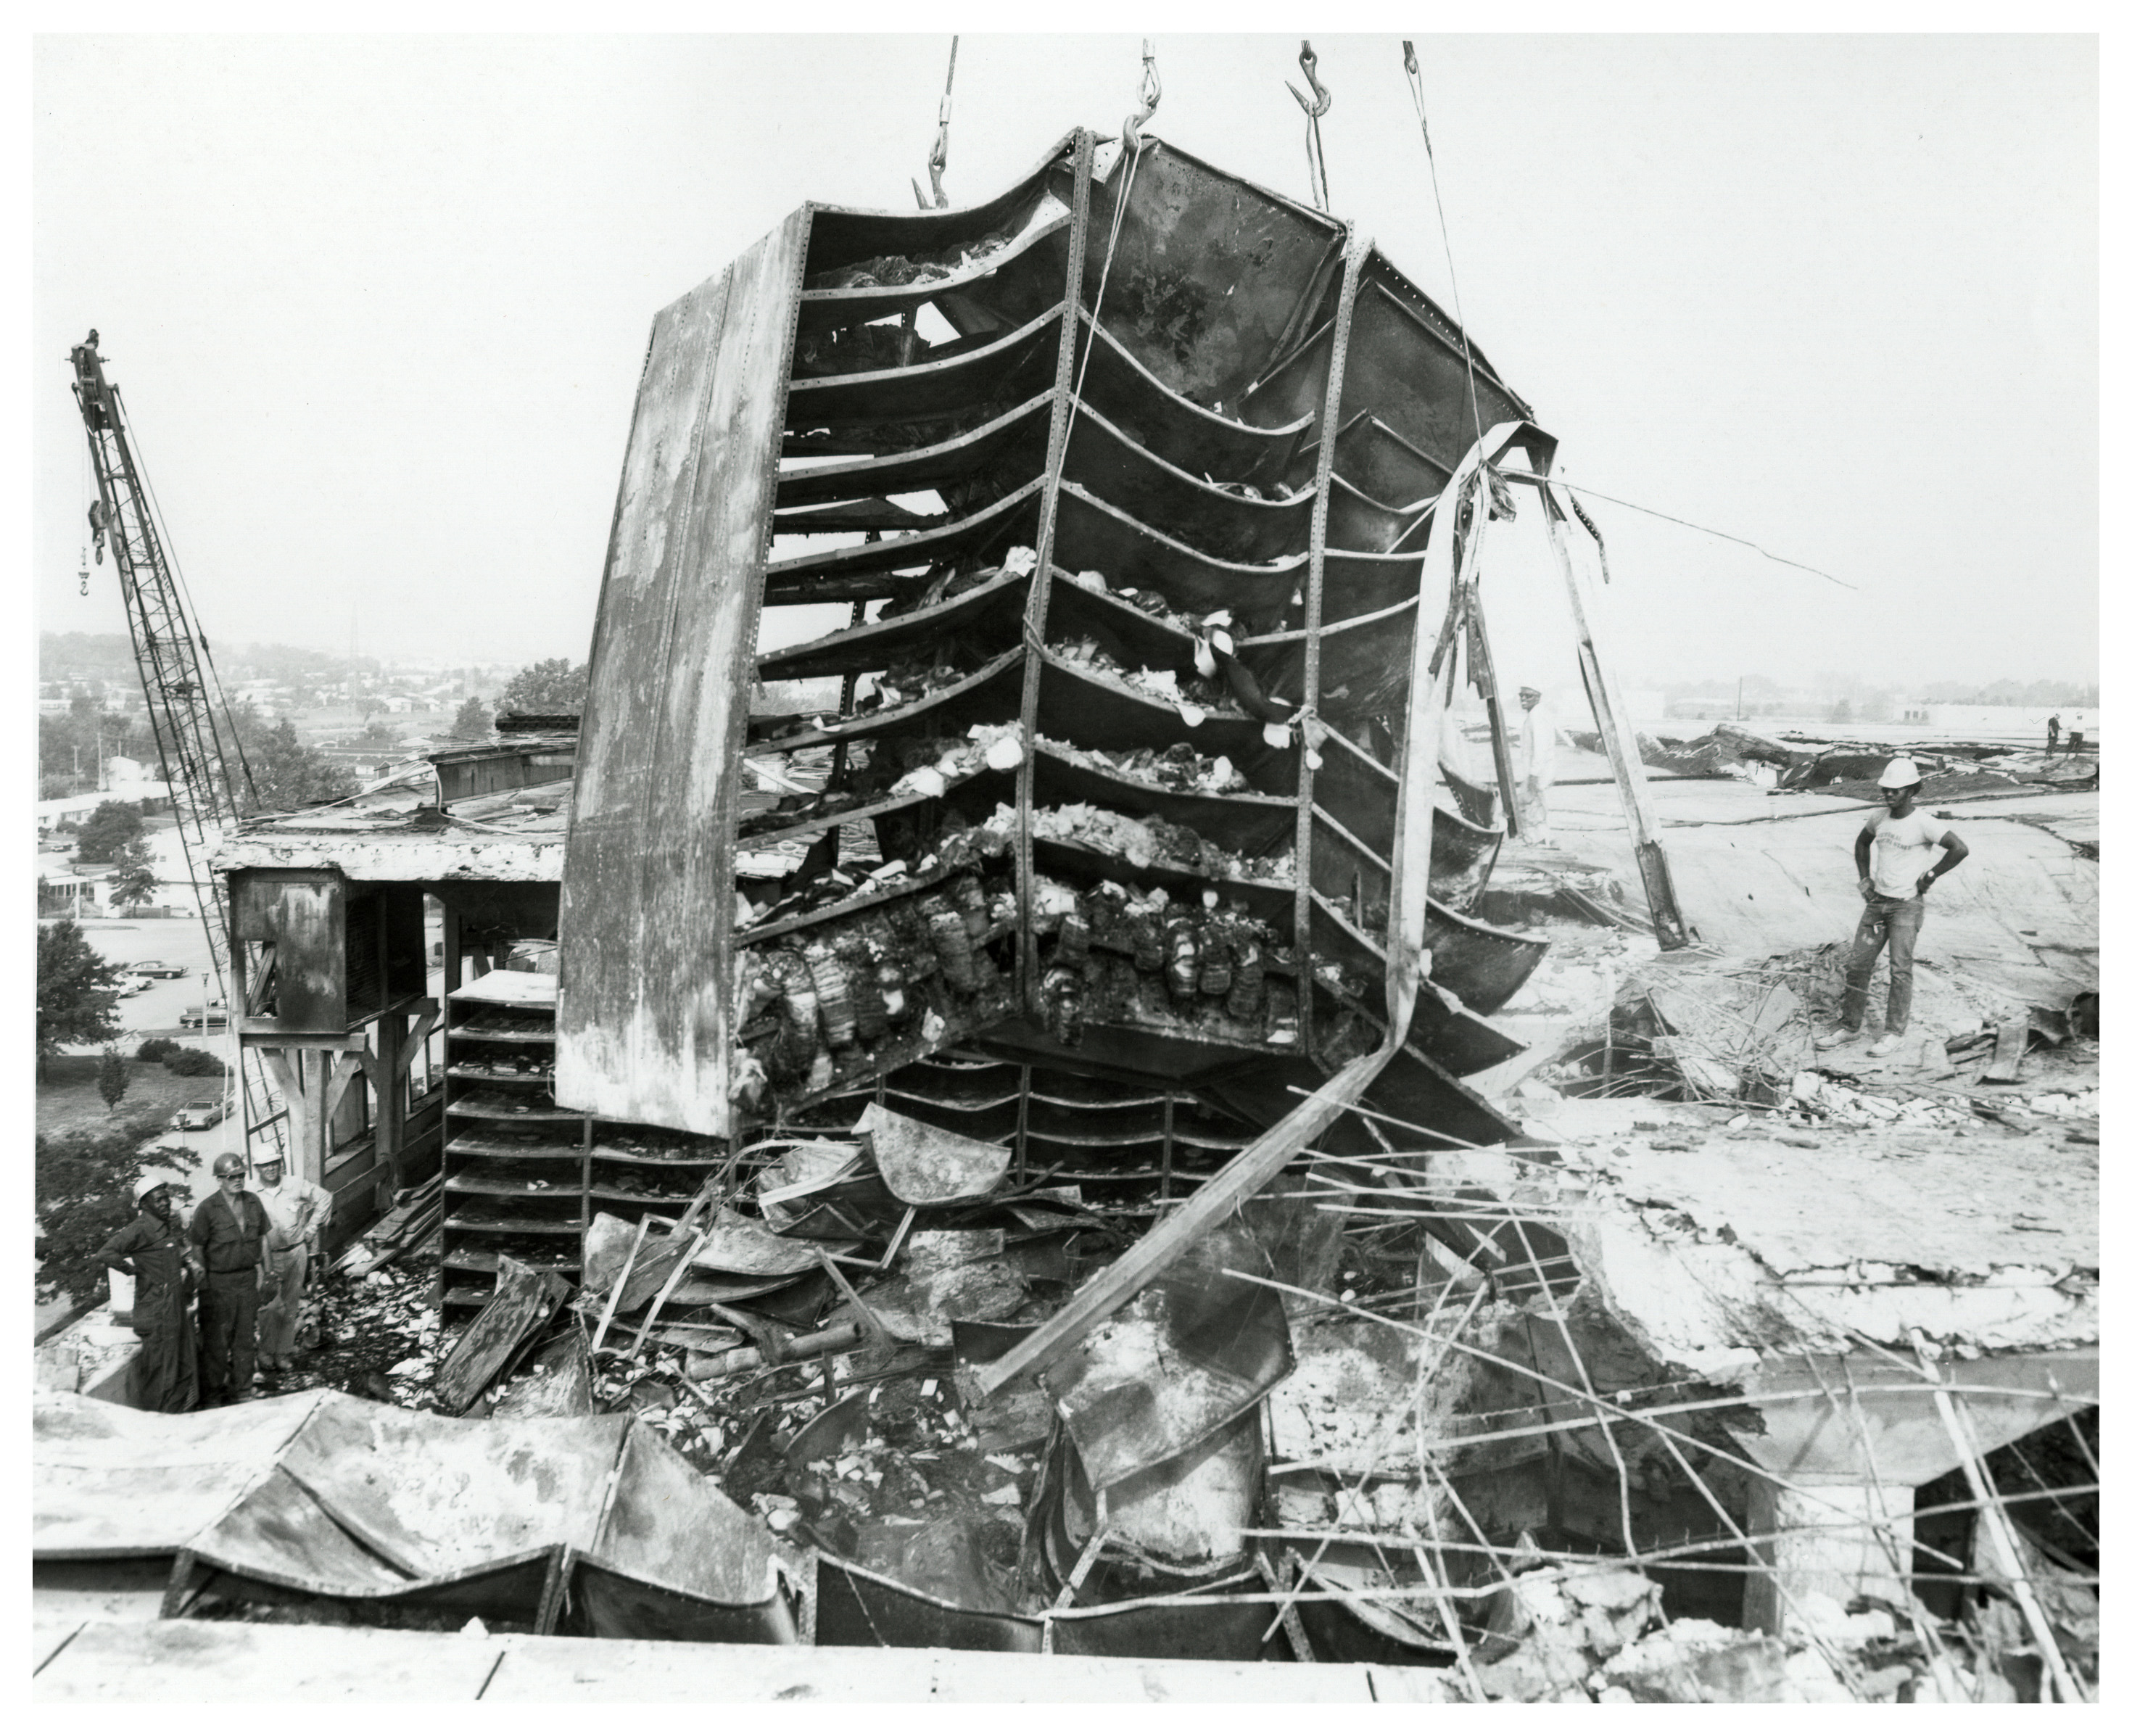 Not until demolition and removal of the collapsed roof and the damaged shelving occurred would staff realize how many records, even near the fire's origin, had actually survived the fire. Pooling water allowed boxes on the lowest shelves to absorb water, while records that fell in to the aisles also received protection from the standing water. (National Archives, Record Group 64)